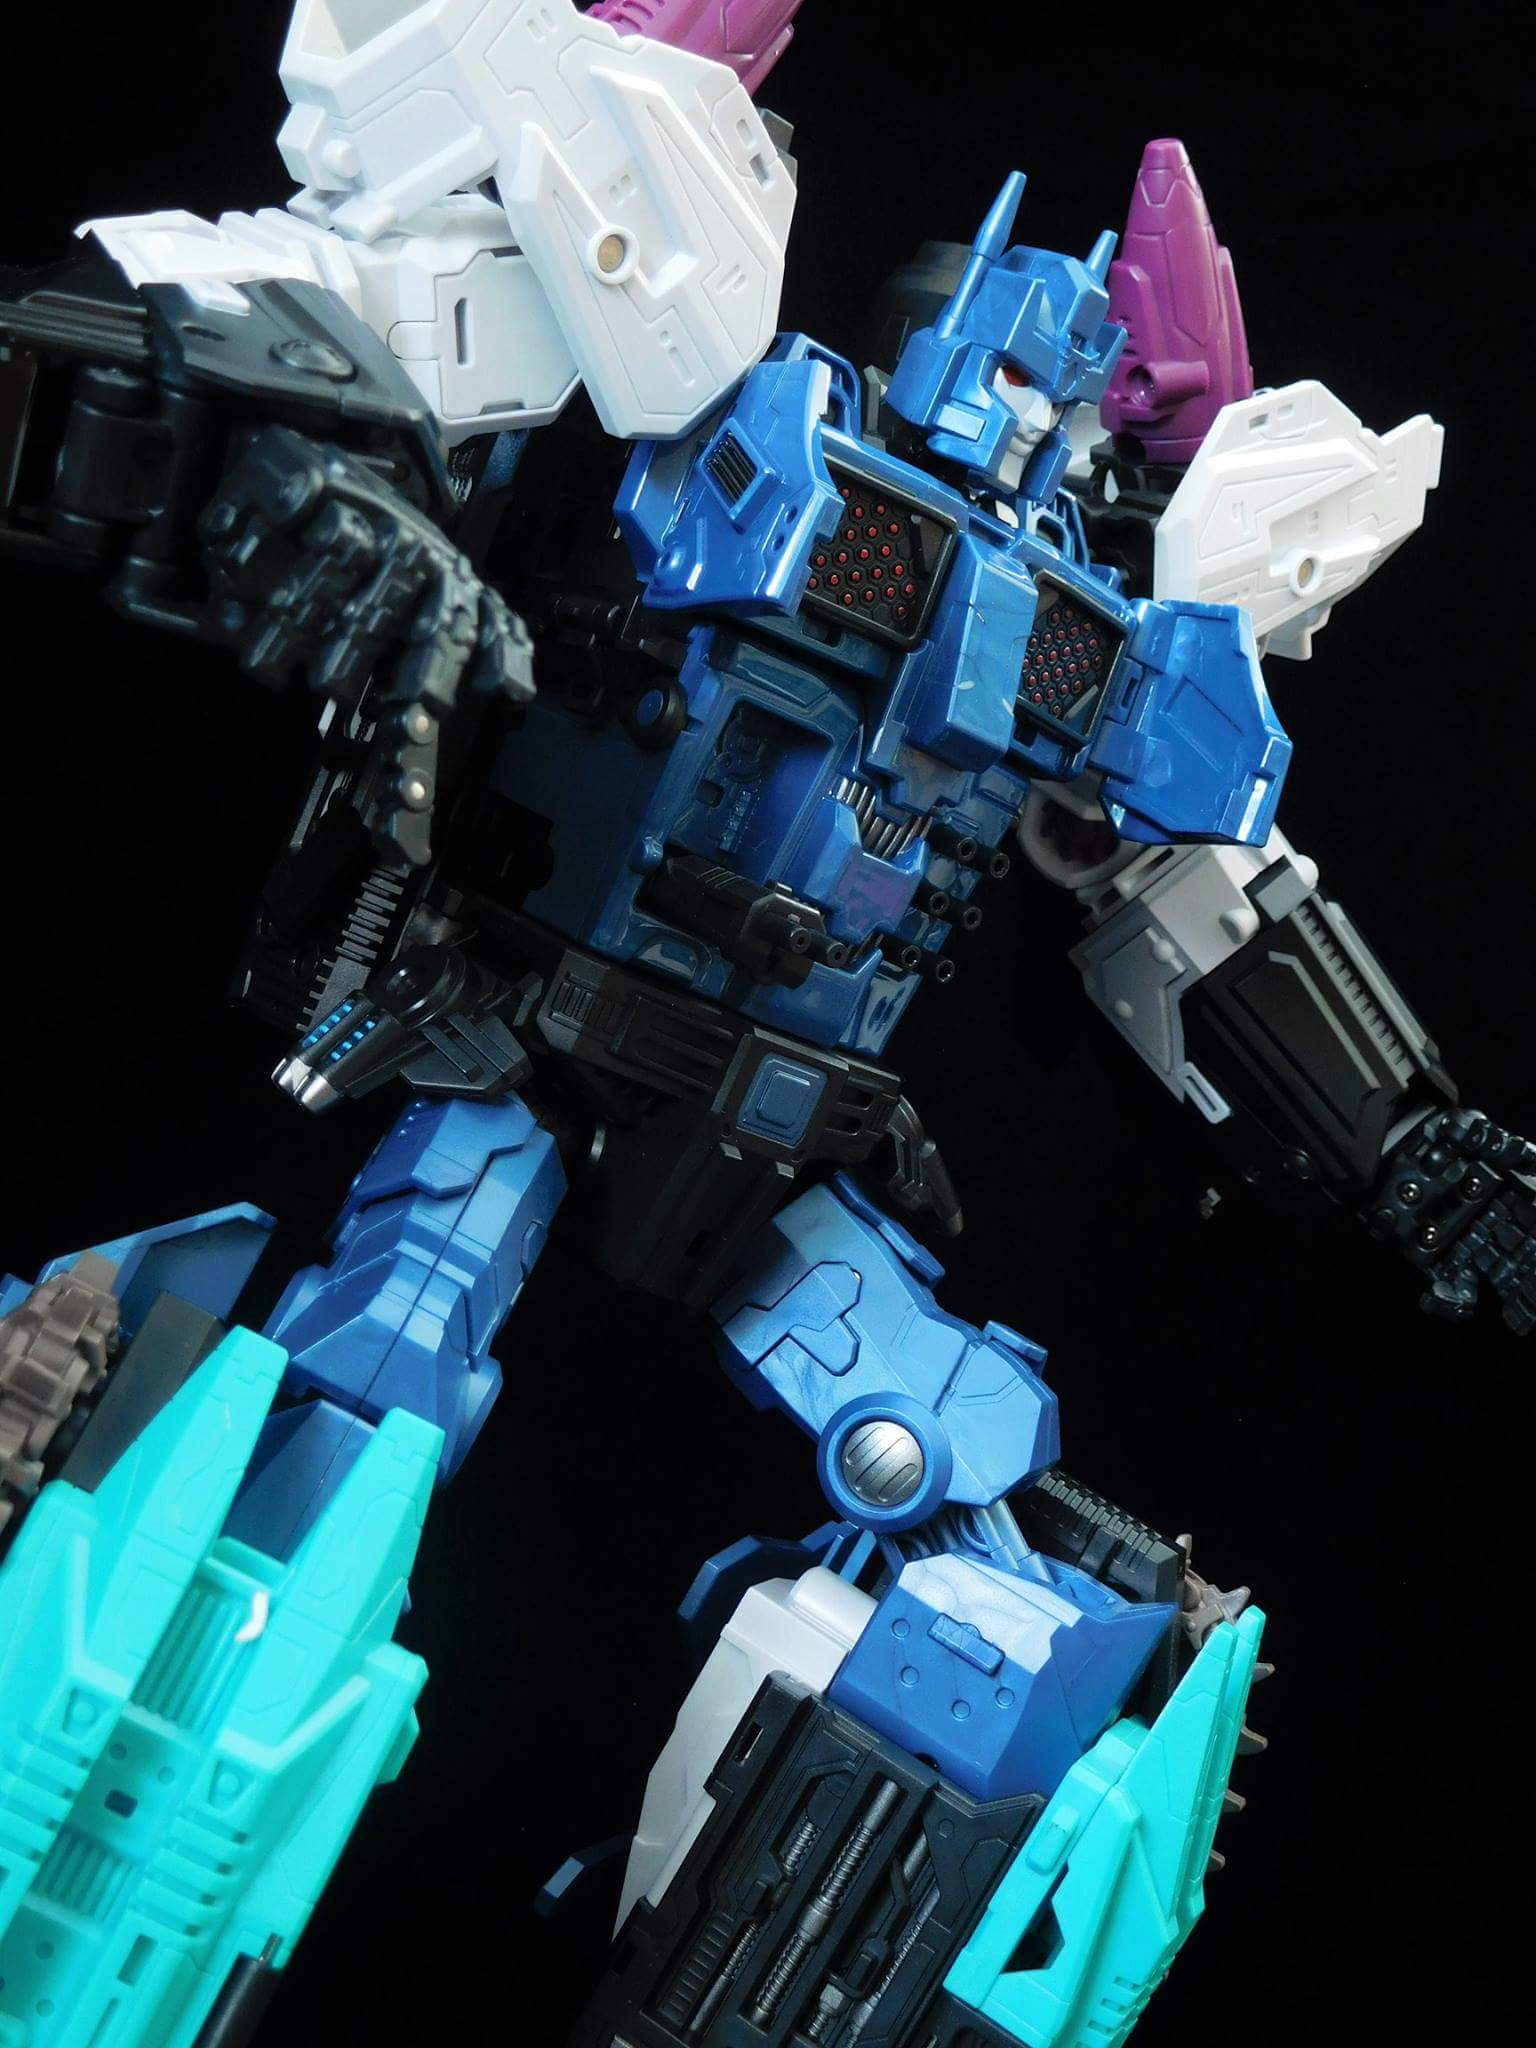 [Mastermind Creations] Produit Tiers - R-17 Carnifex - aka Overlord (TF Masterforce) - Page 3 RKaNLCfw